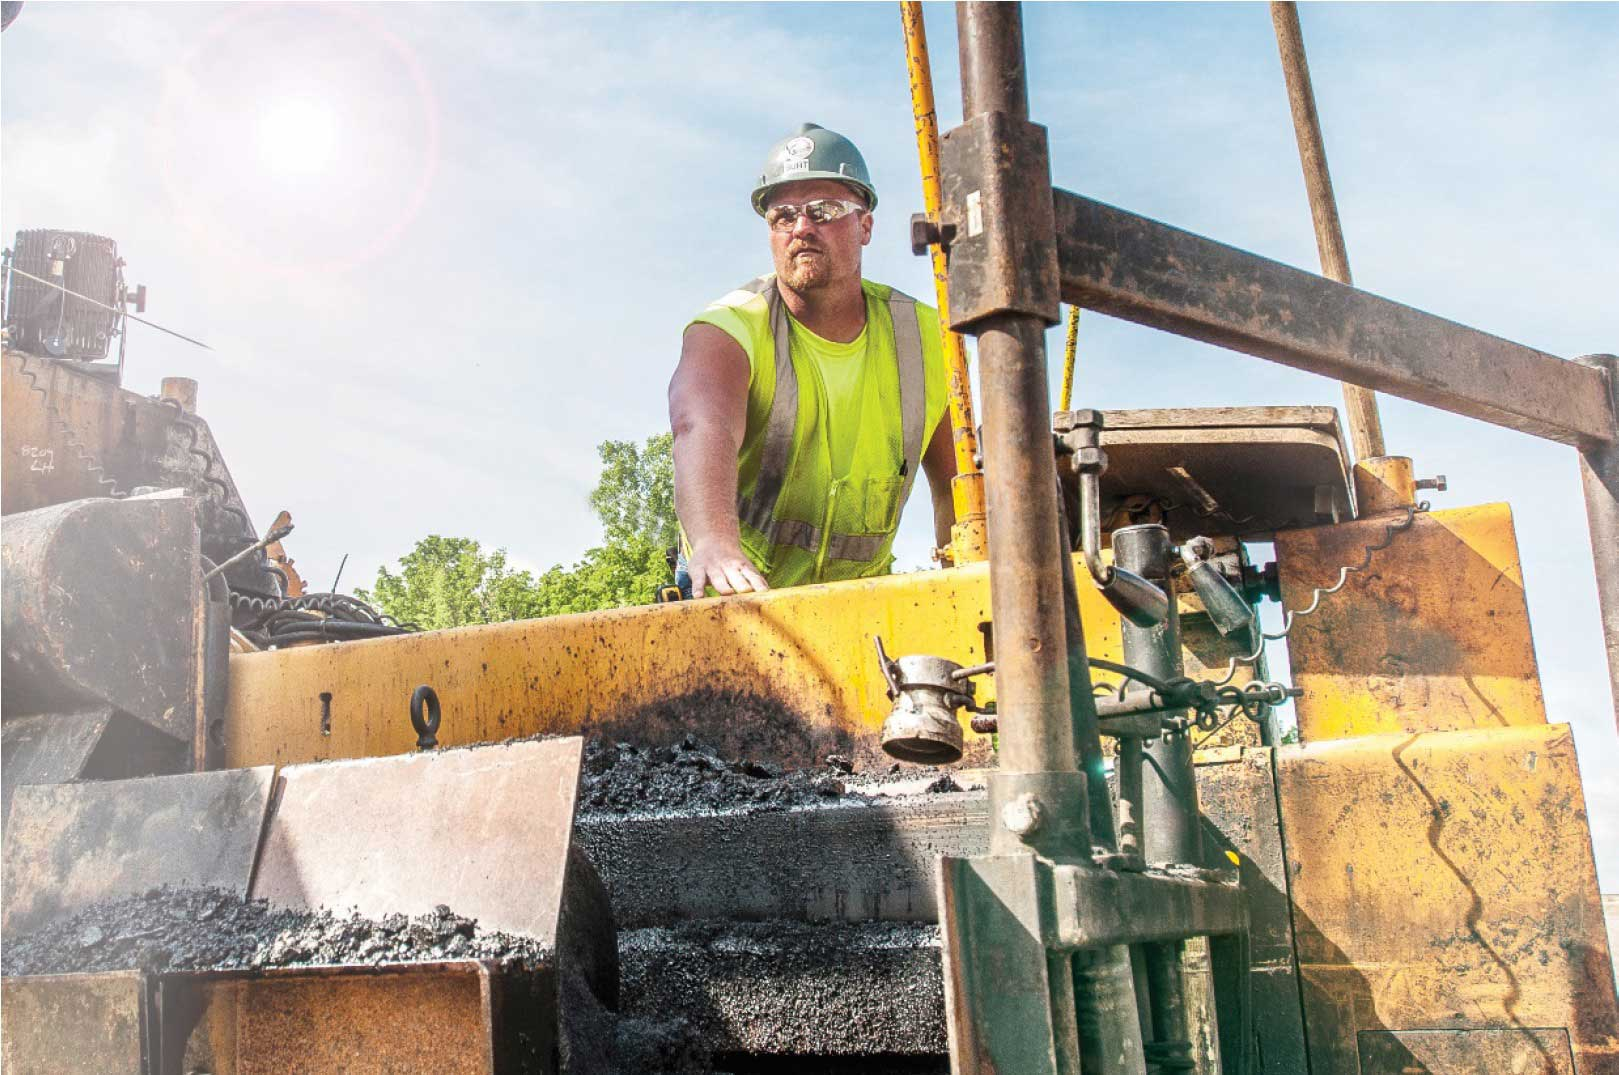 Man riding on construction equipment